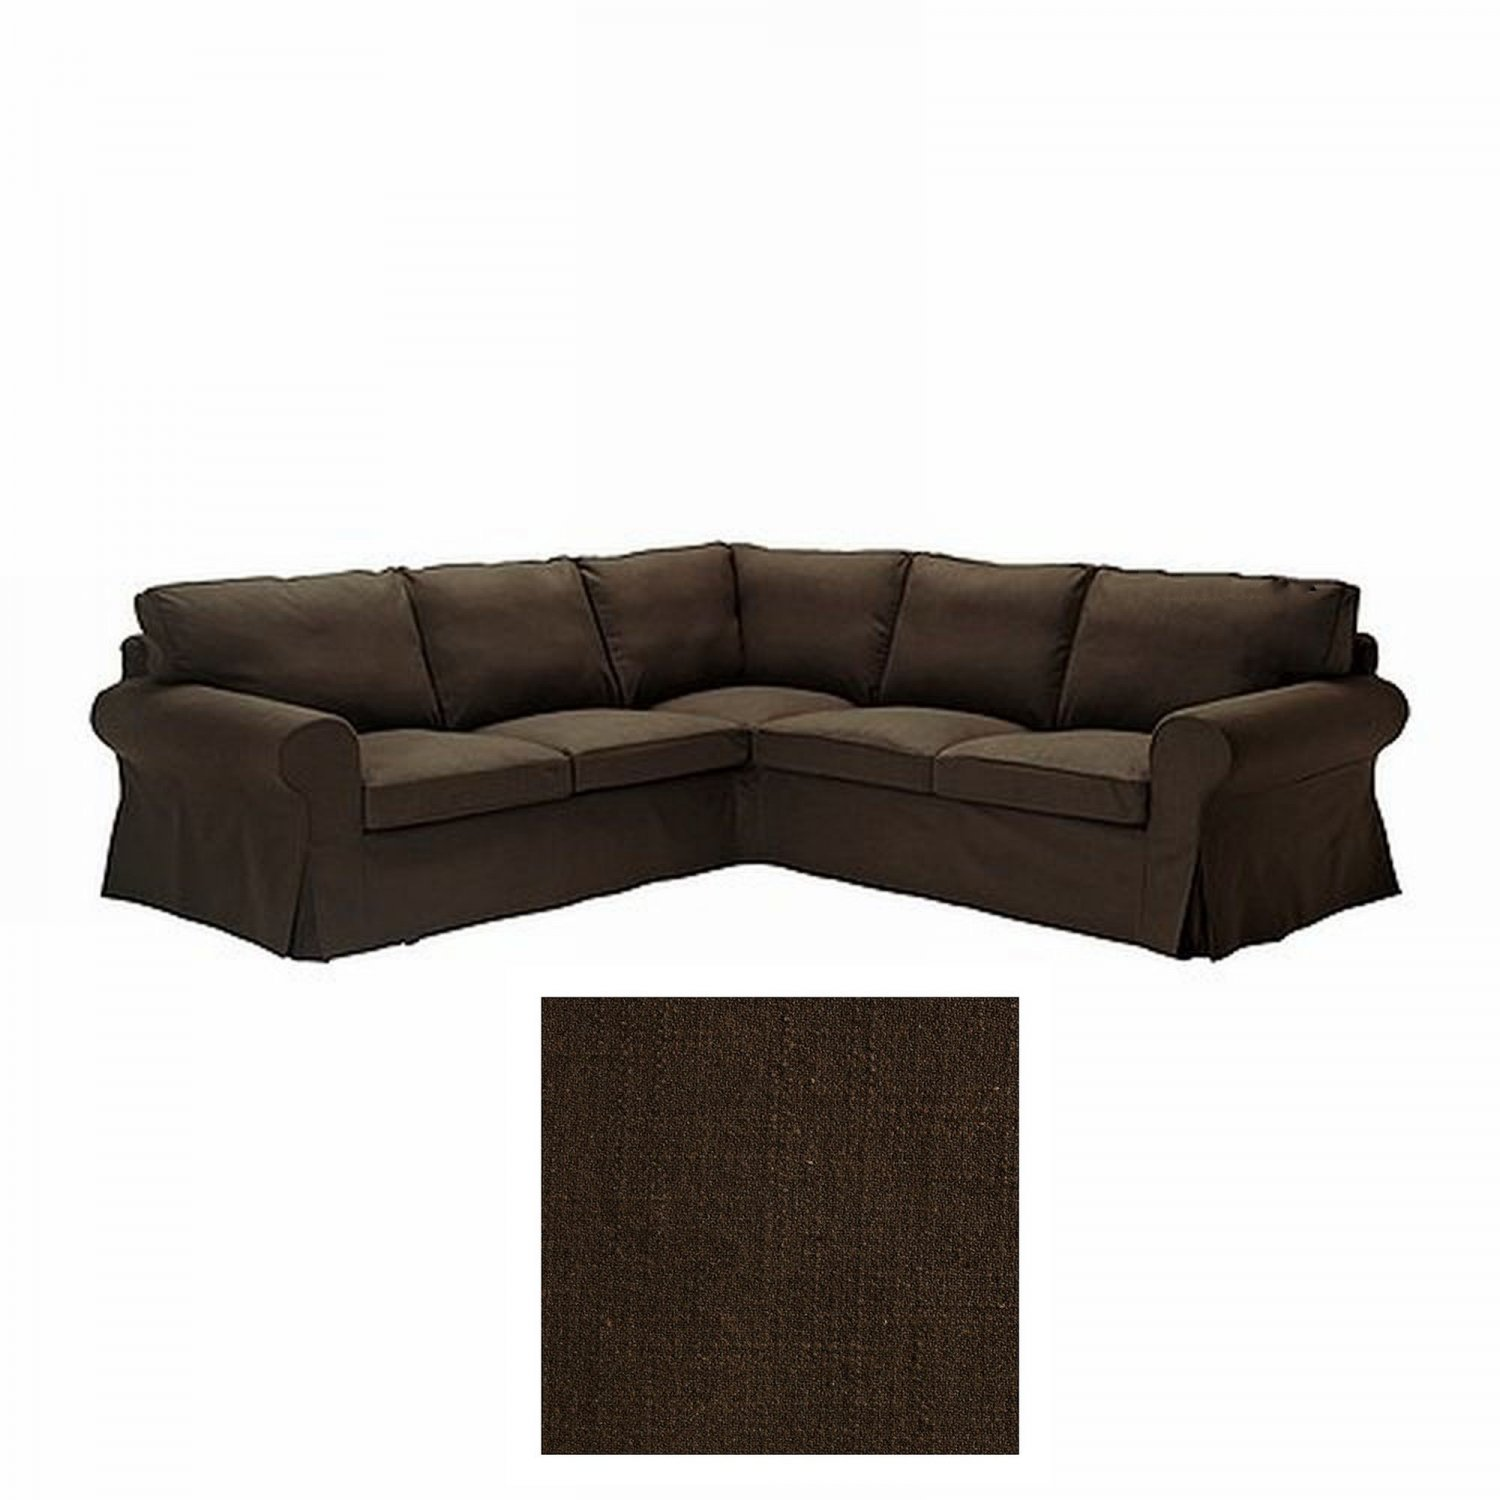 Ikea ektorp 2 2 corner sofa cover slipcover svanby brown for Ikea corner sofa